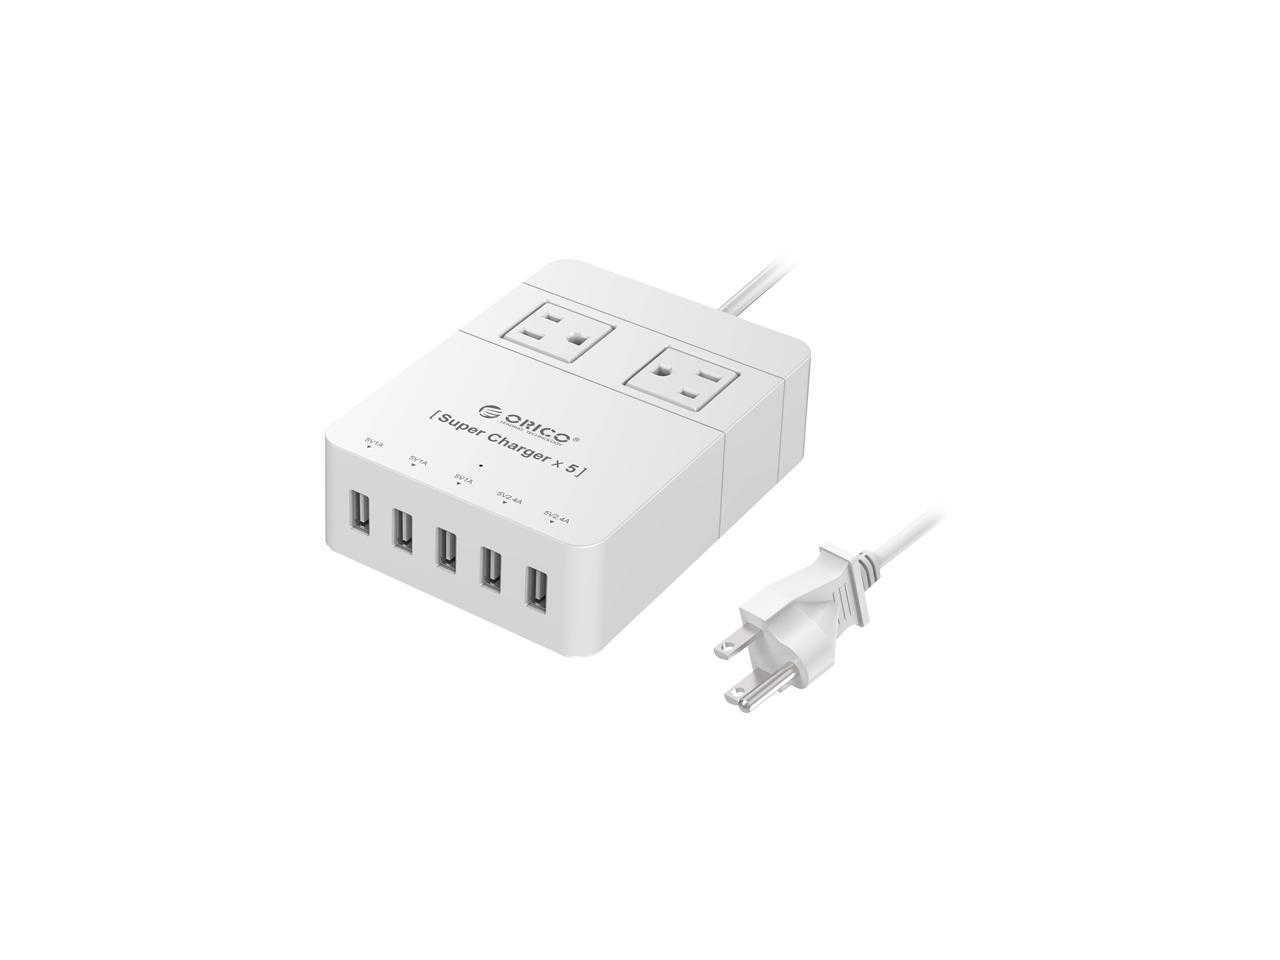 ORICO 4 AC Outlet Surge Protector with 5 USB Charging Port HPC-4A5U-V1-US